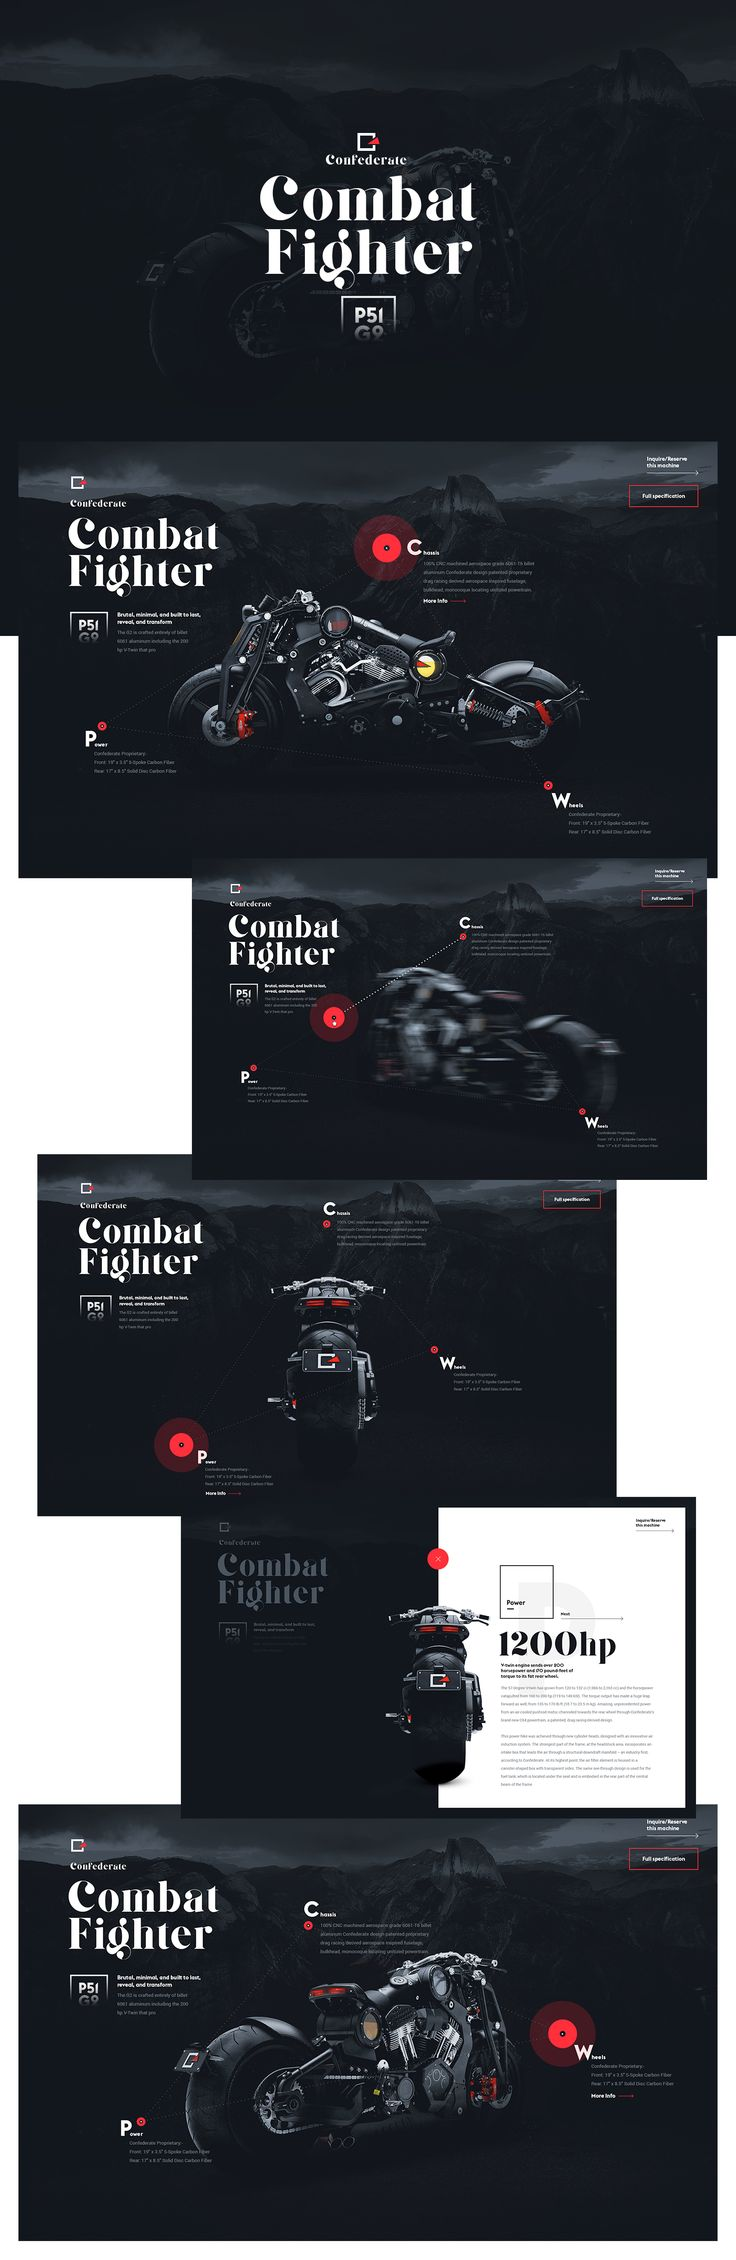 Ui design concept and visual identity for the new Microsite for  Confederate-P51-Combat-Fighter.